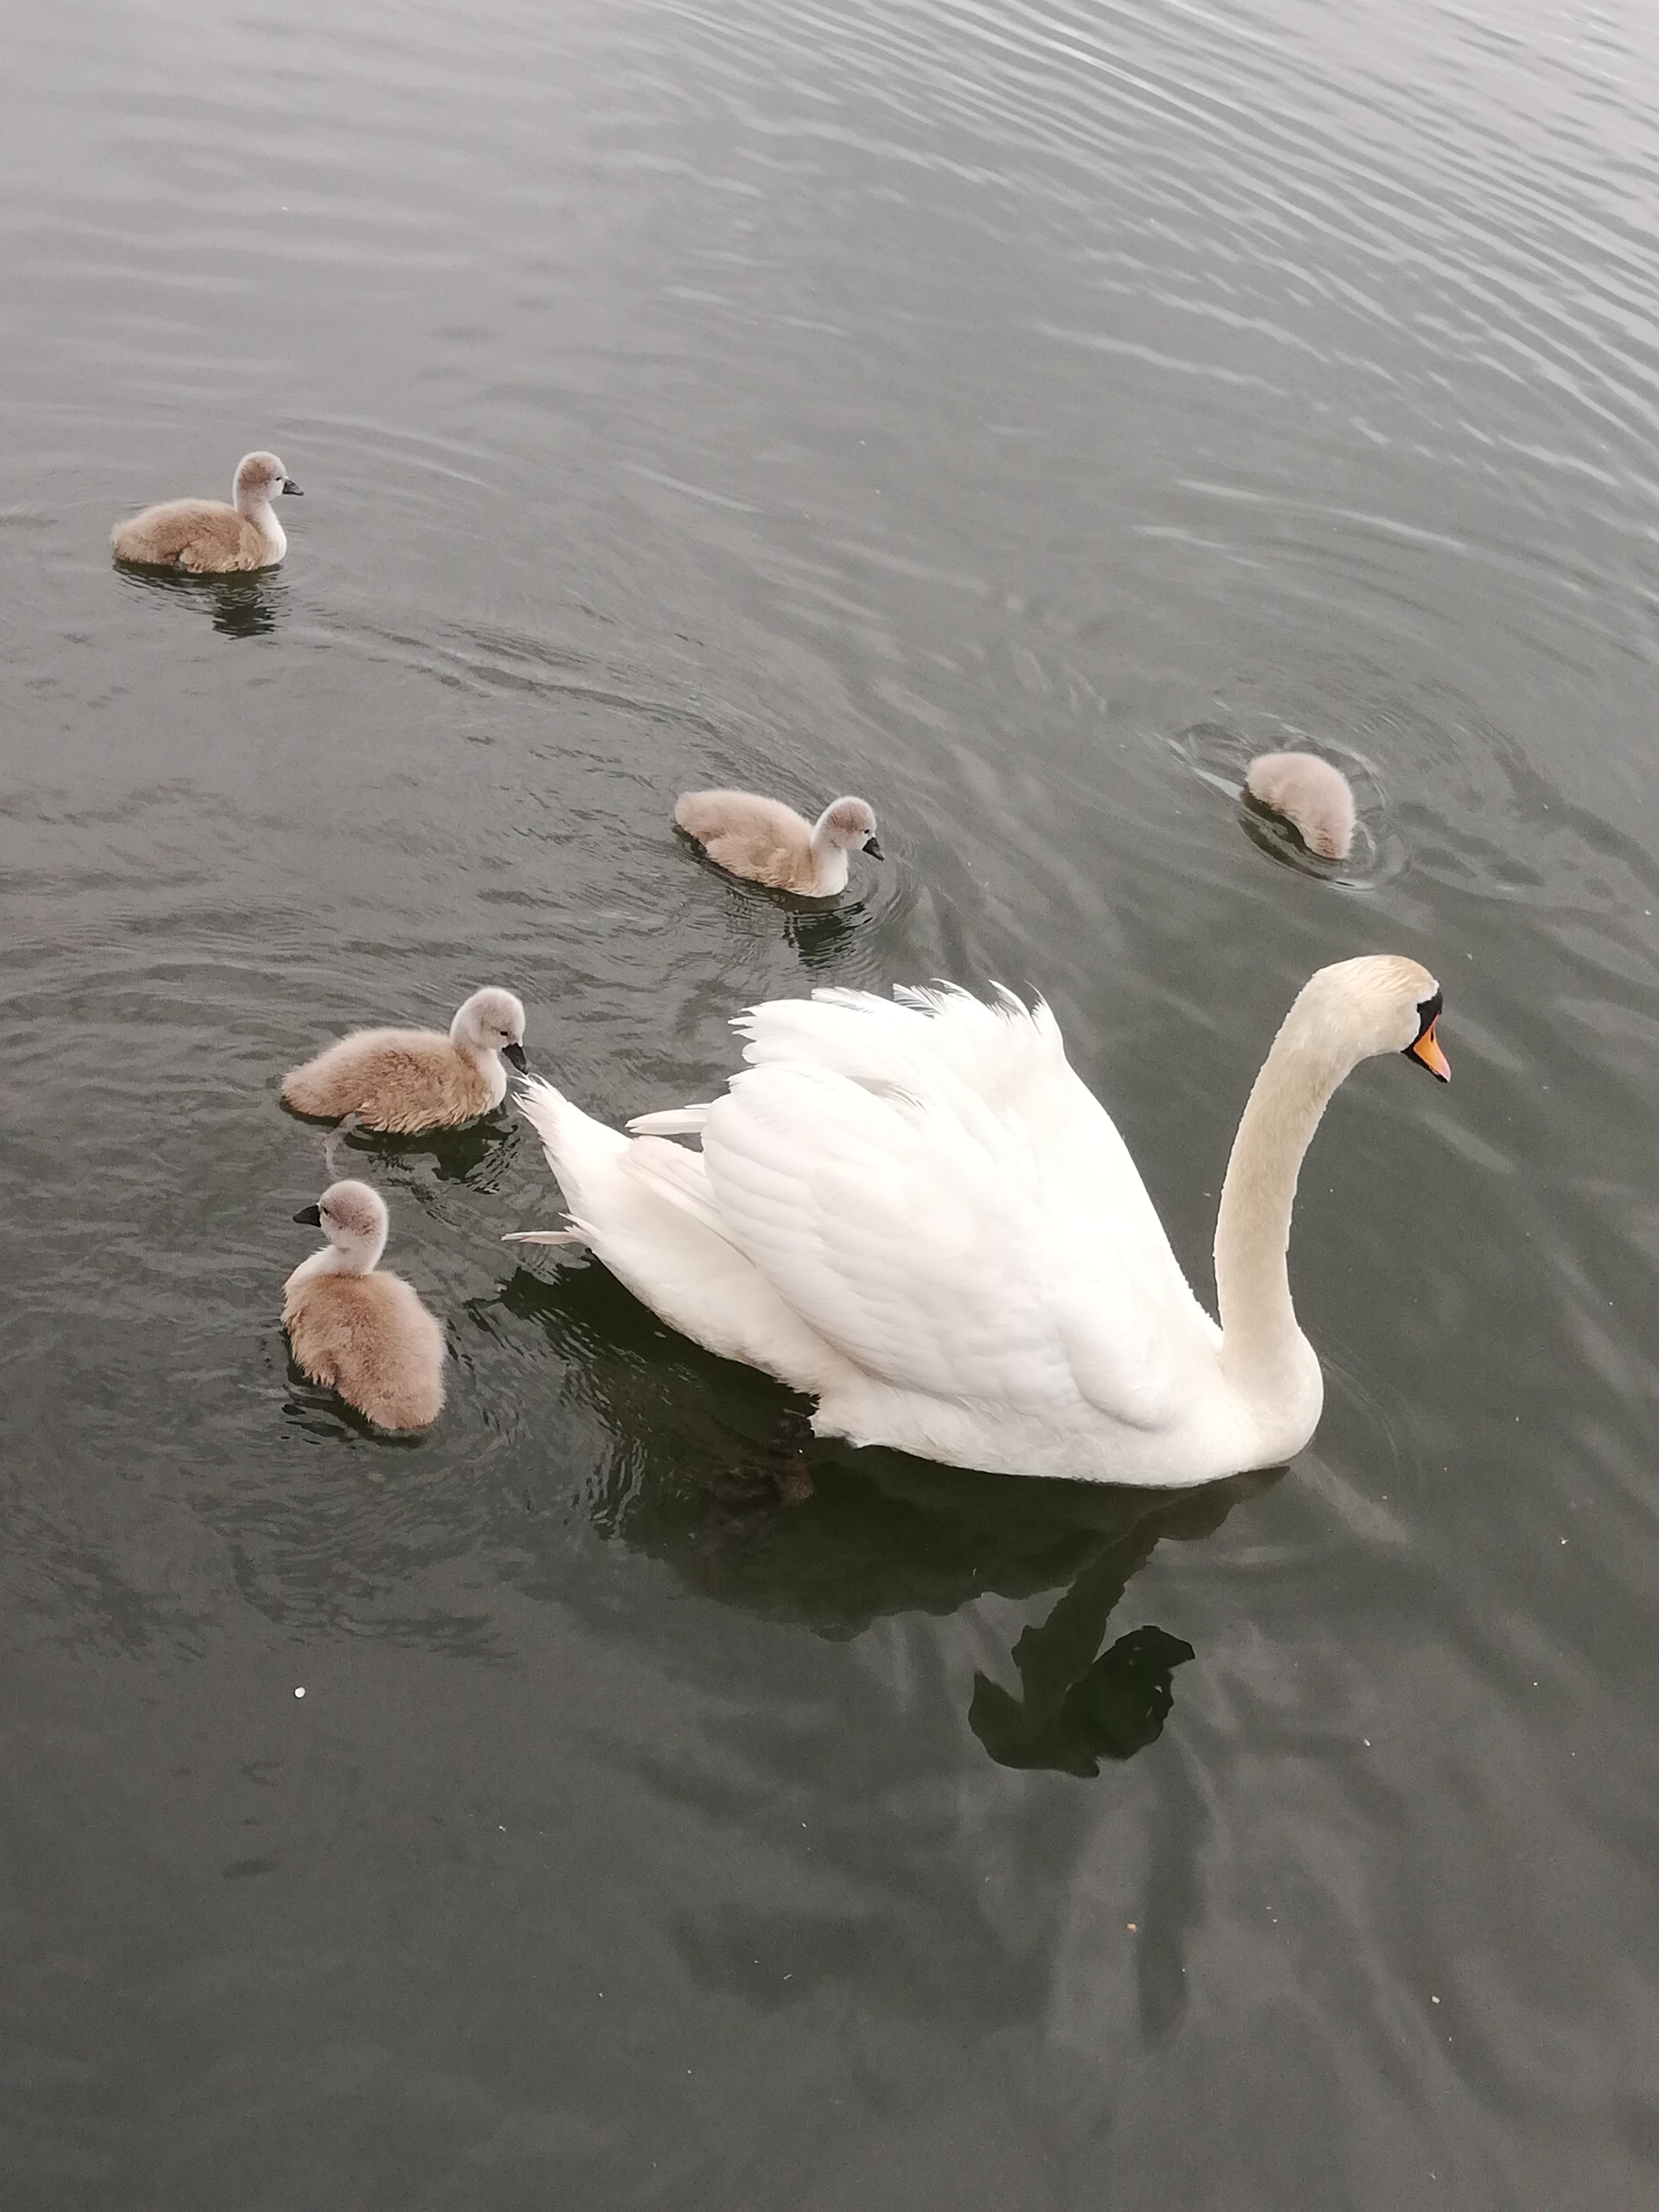 A Beautiful swan with her babies (Cignets) swimming on the lake